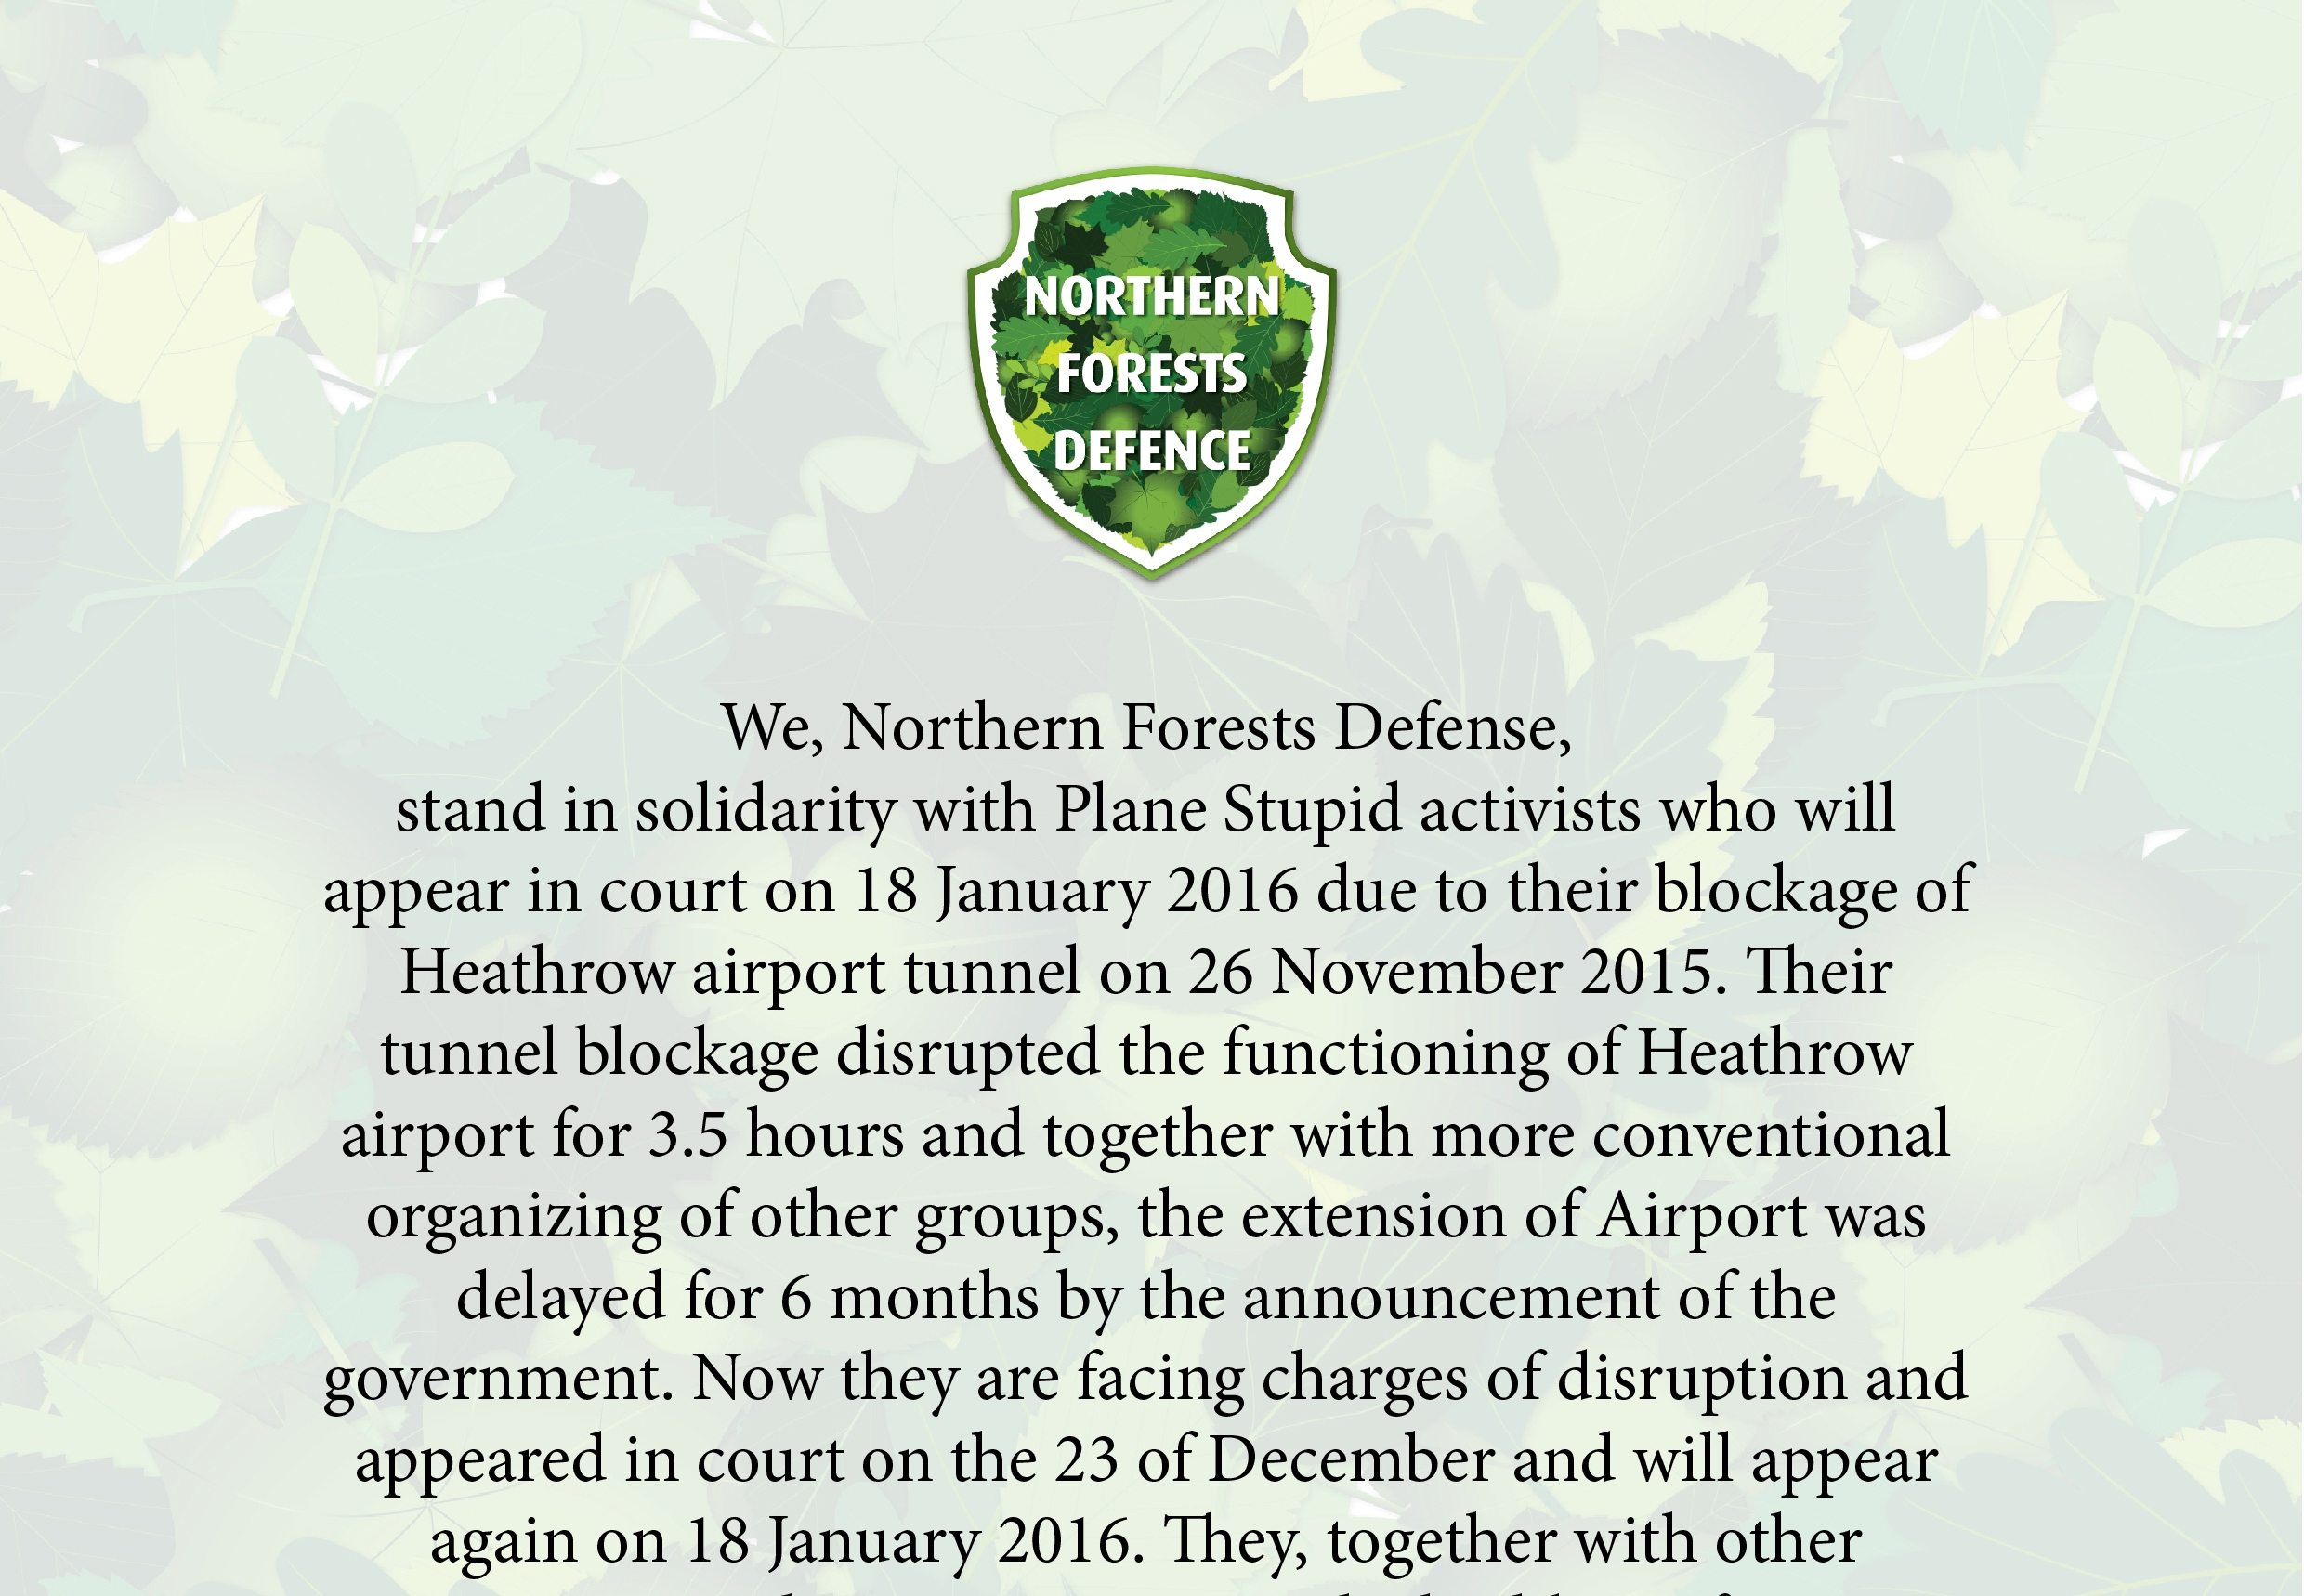 We, Northern Forests Defense, stand in solidarity with Plane Stupid activists who will appear in court on 18 January 2016 due to their blockage of Heathrow airport tunnel on 26 November 2015